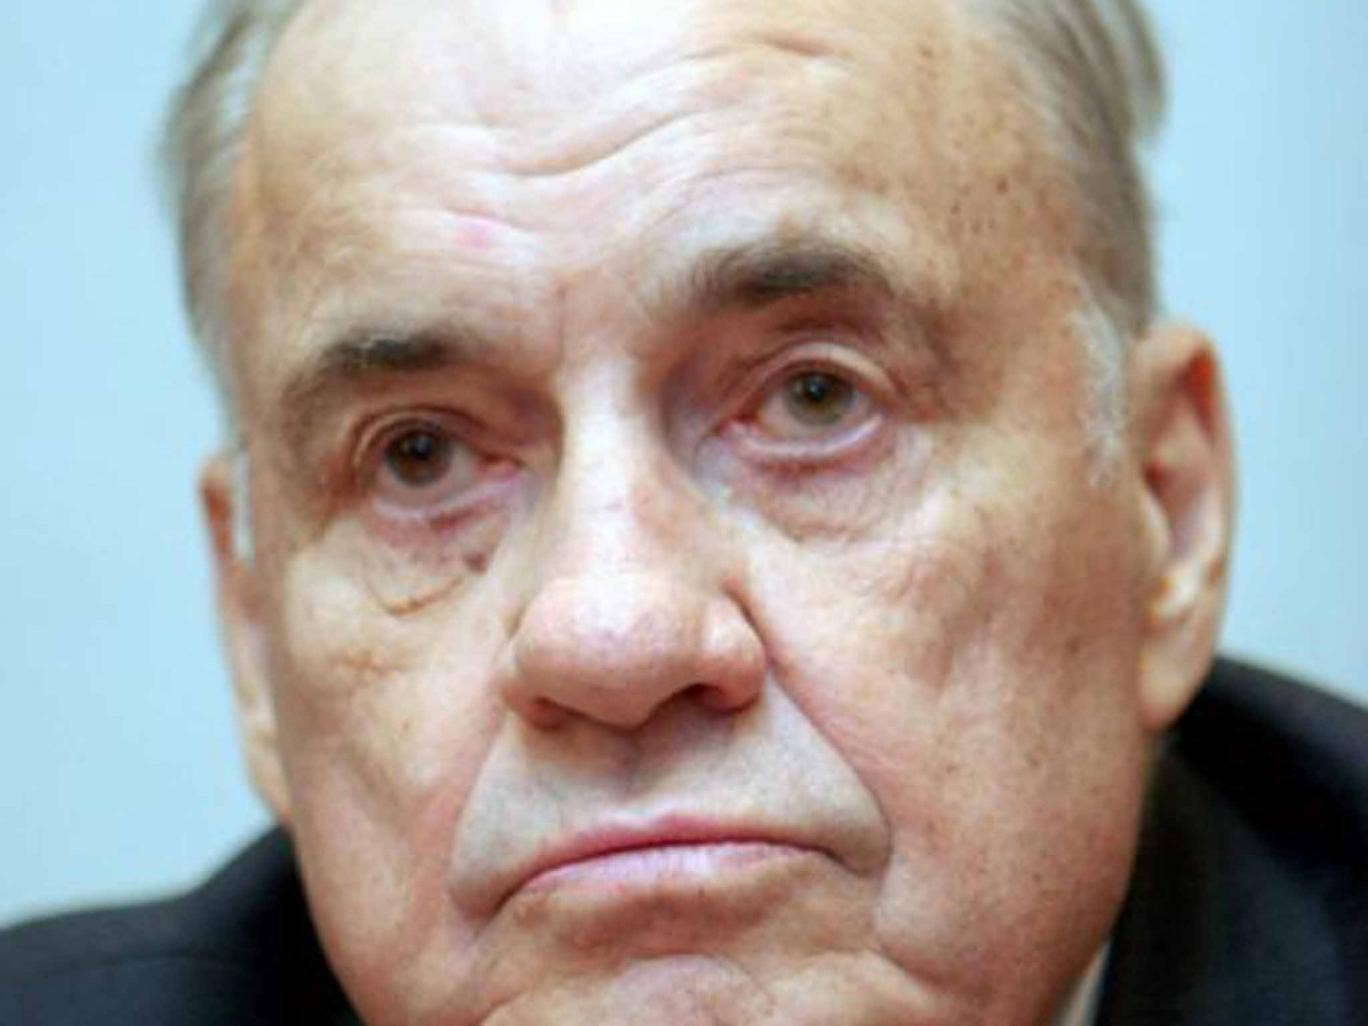 Eldar Ryazanov almost died after the death of his wife 29.07.2011 10